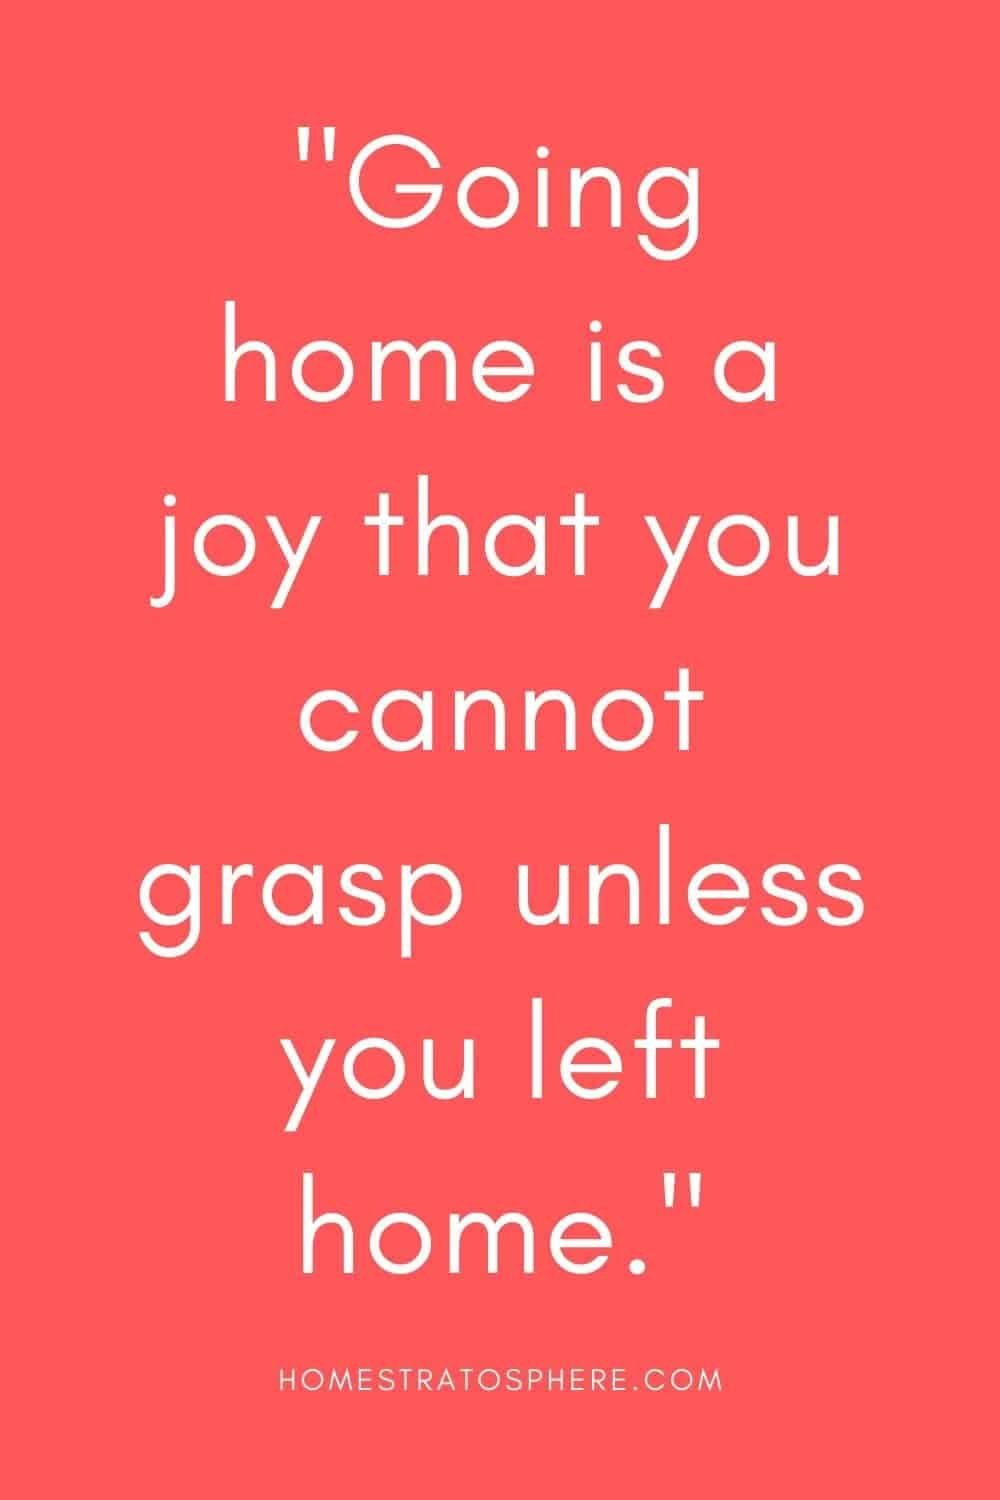 """""""Going home is a joy that you cannot grasp unless you left home."""""""